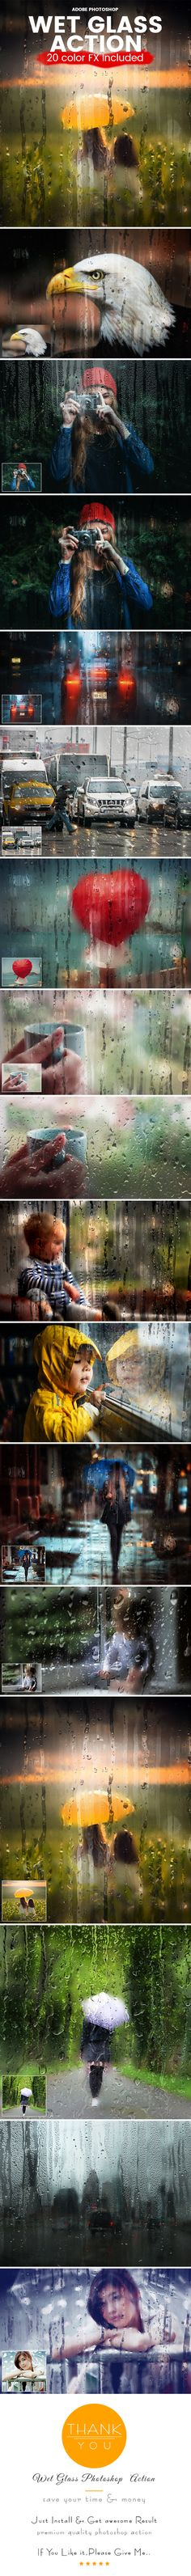 Wet Glass Photoshop Action - Photo Effects Actions